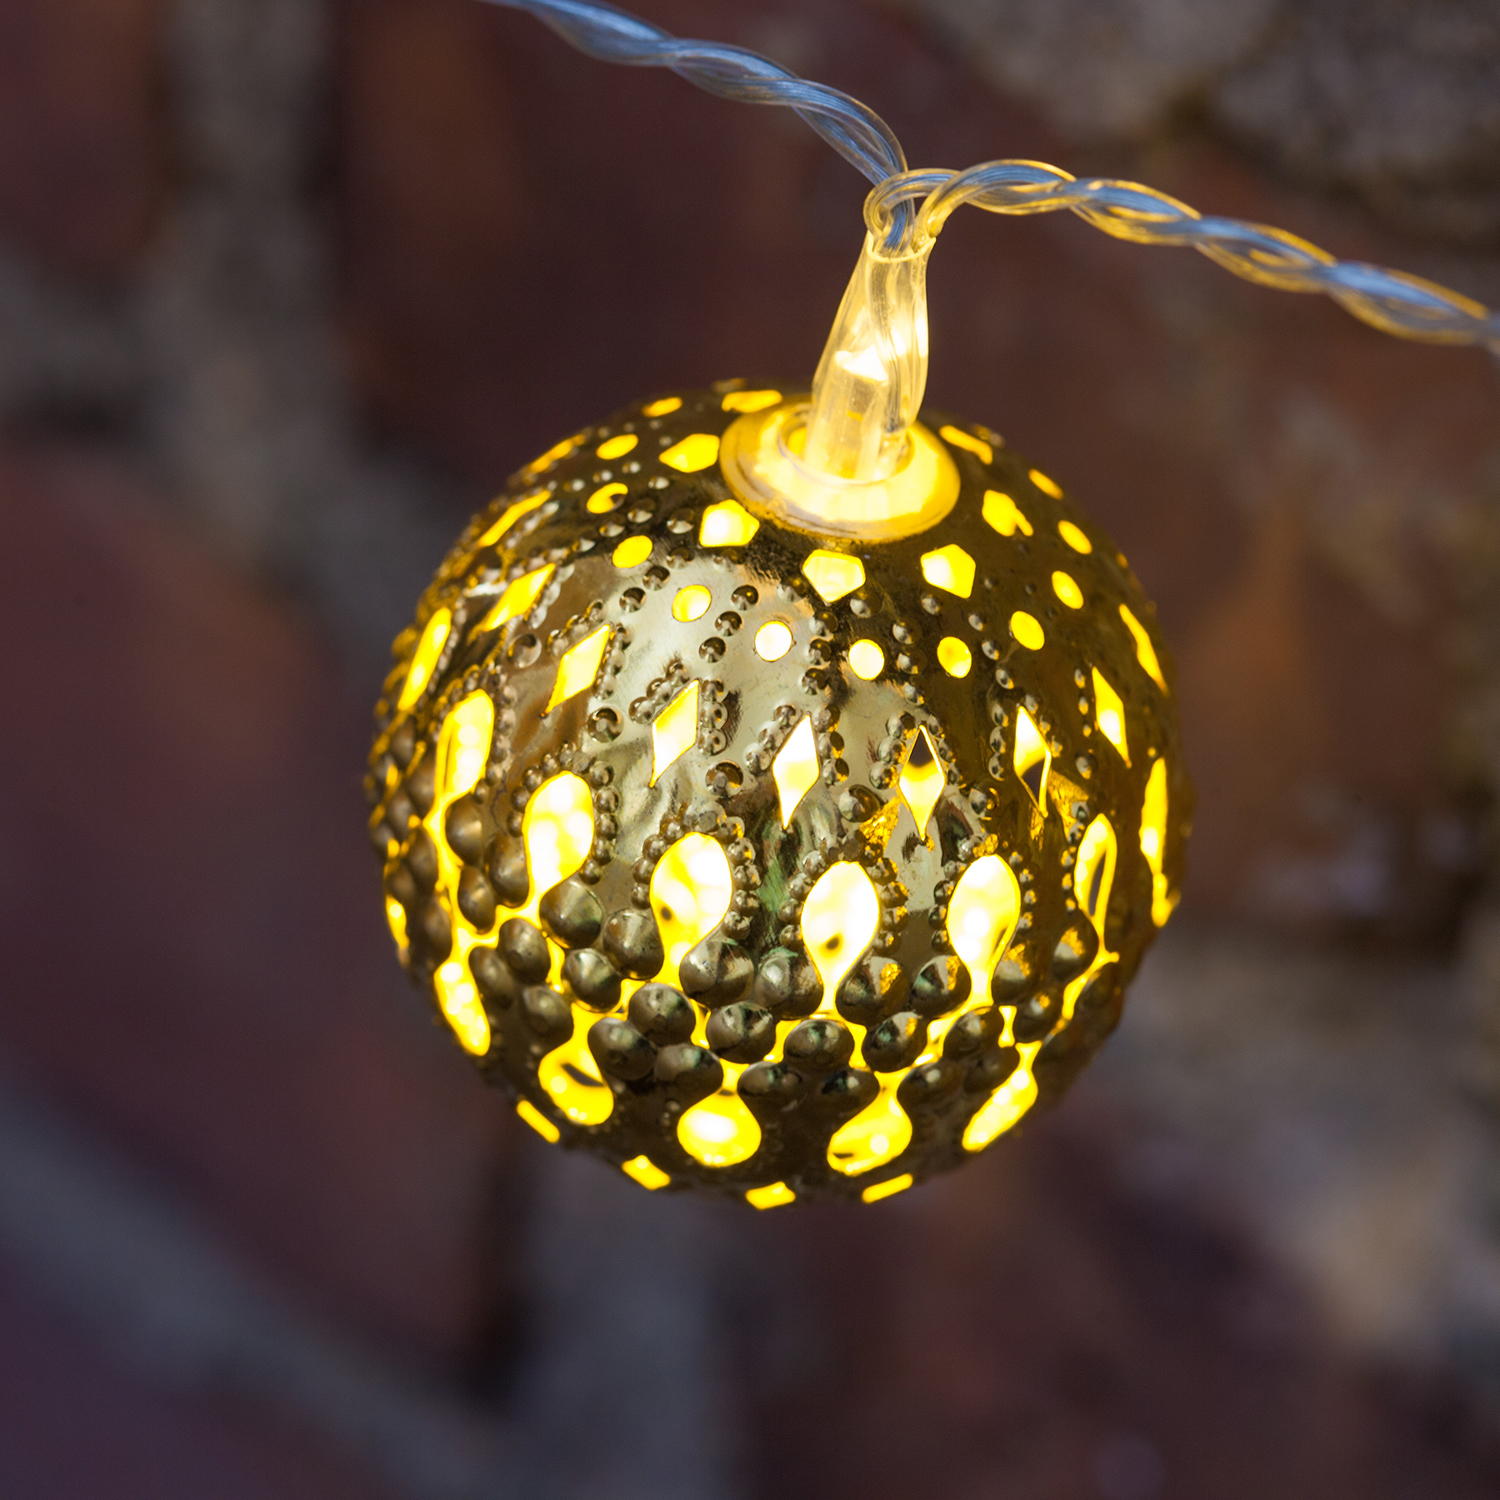 Battery Operated String Lights : Lights.com Lit Decor String Lights Decorative Gold Moroccan Bauble Battery Operated ...